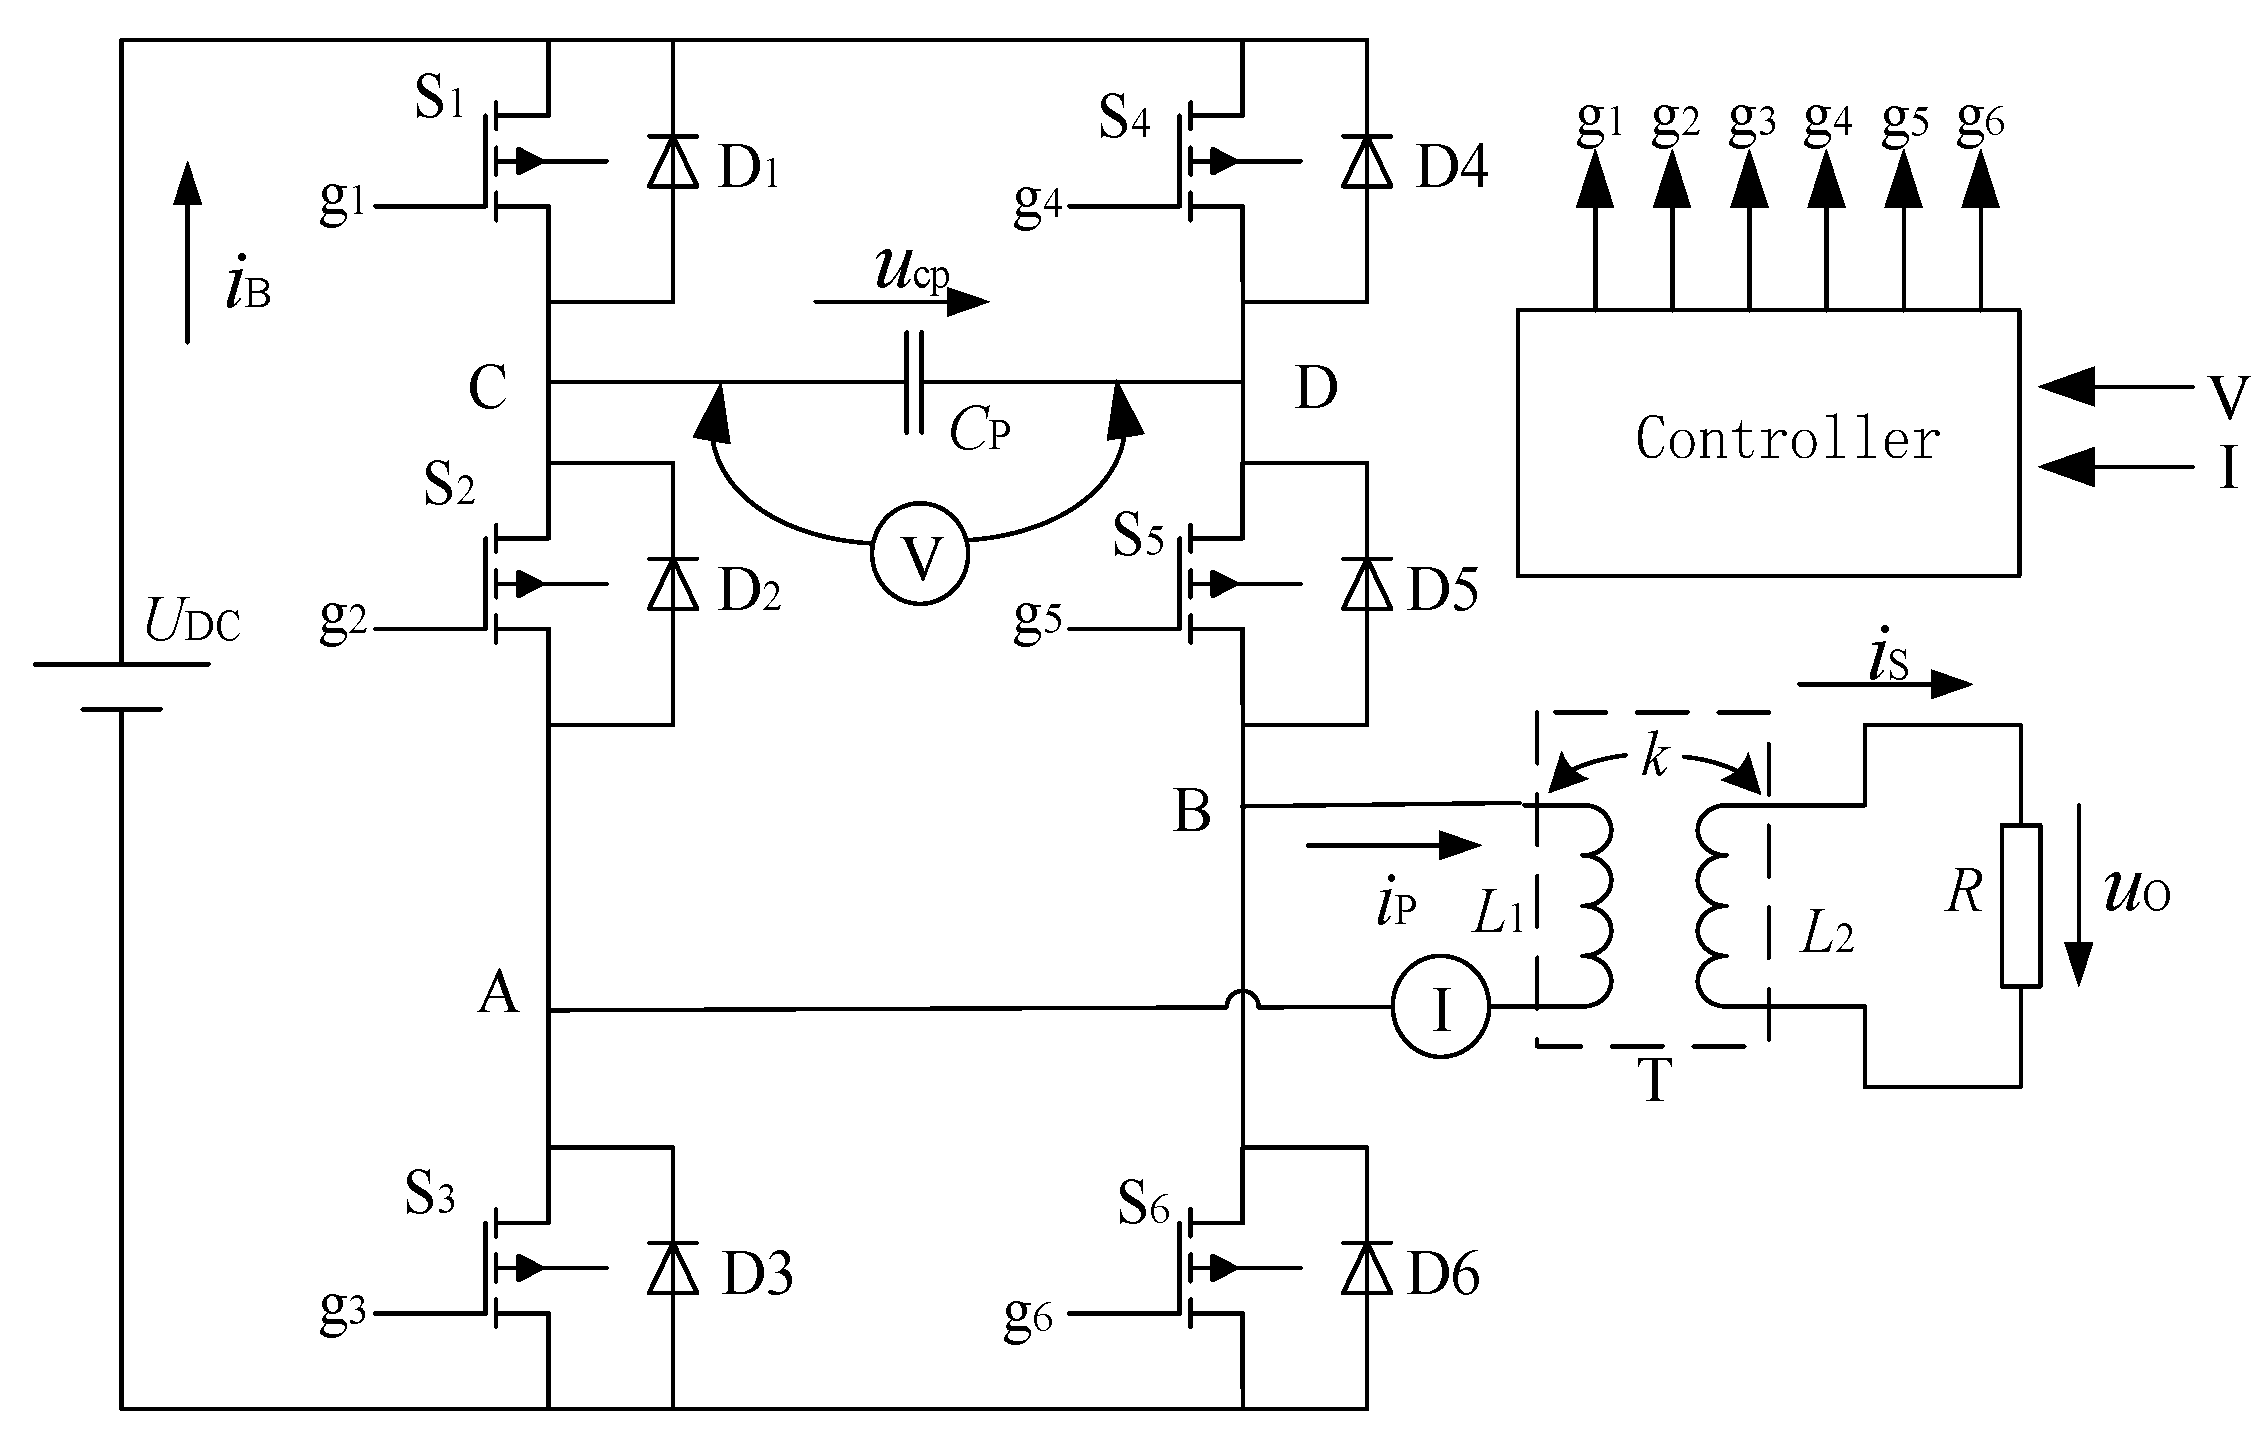 Automations Gt Power Control Gt Dual Power Switch Circuit Diagram